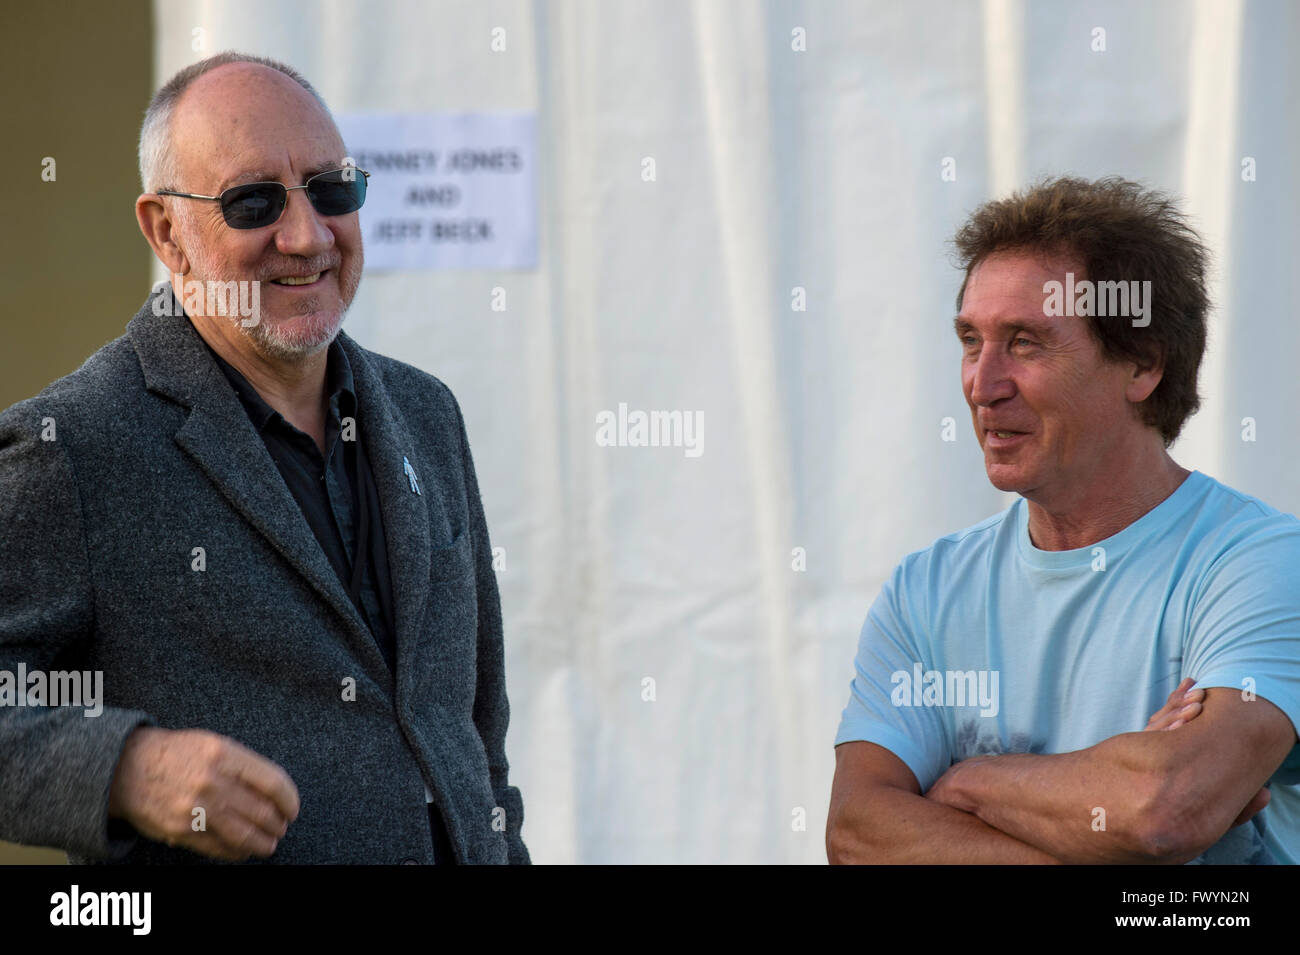 Pete Townsend and Kenny Jones of British rock band The Who in conversation backstage at the 2014 Rock 'n' - Stock Image